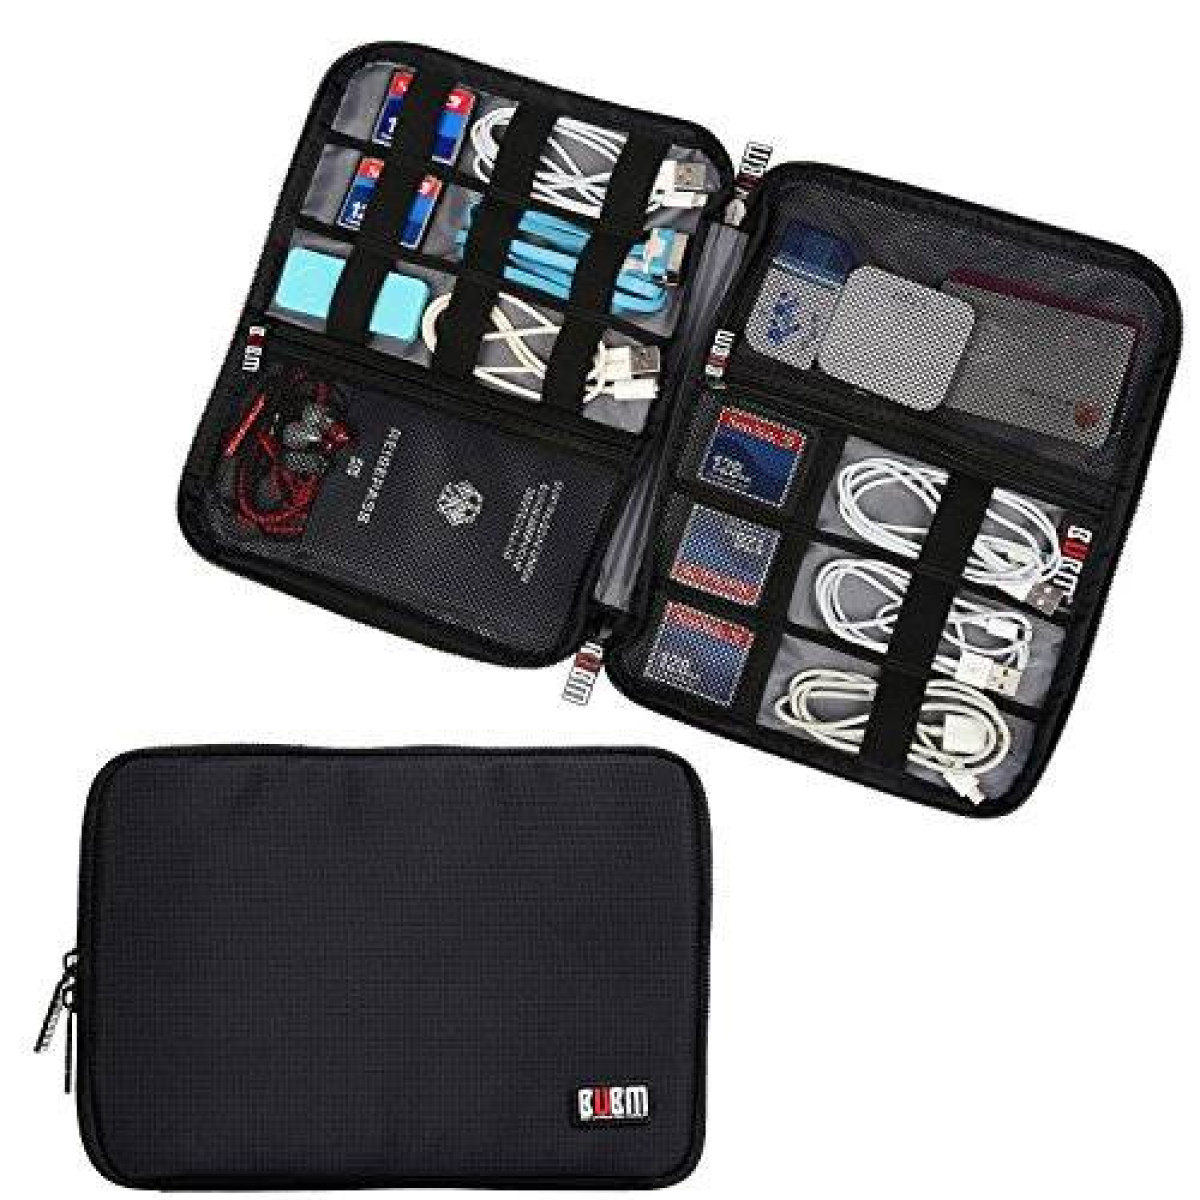 c4b0169cba57 BUBM Travel Gear Organizer / Electronics Accessories Bag / Phone Charger  Case (Large, Black)